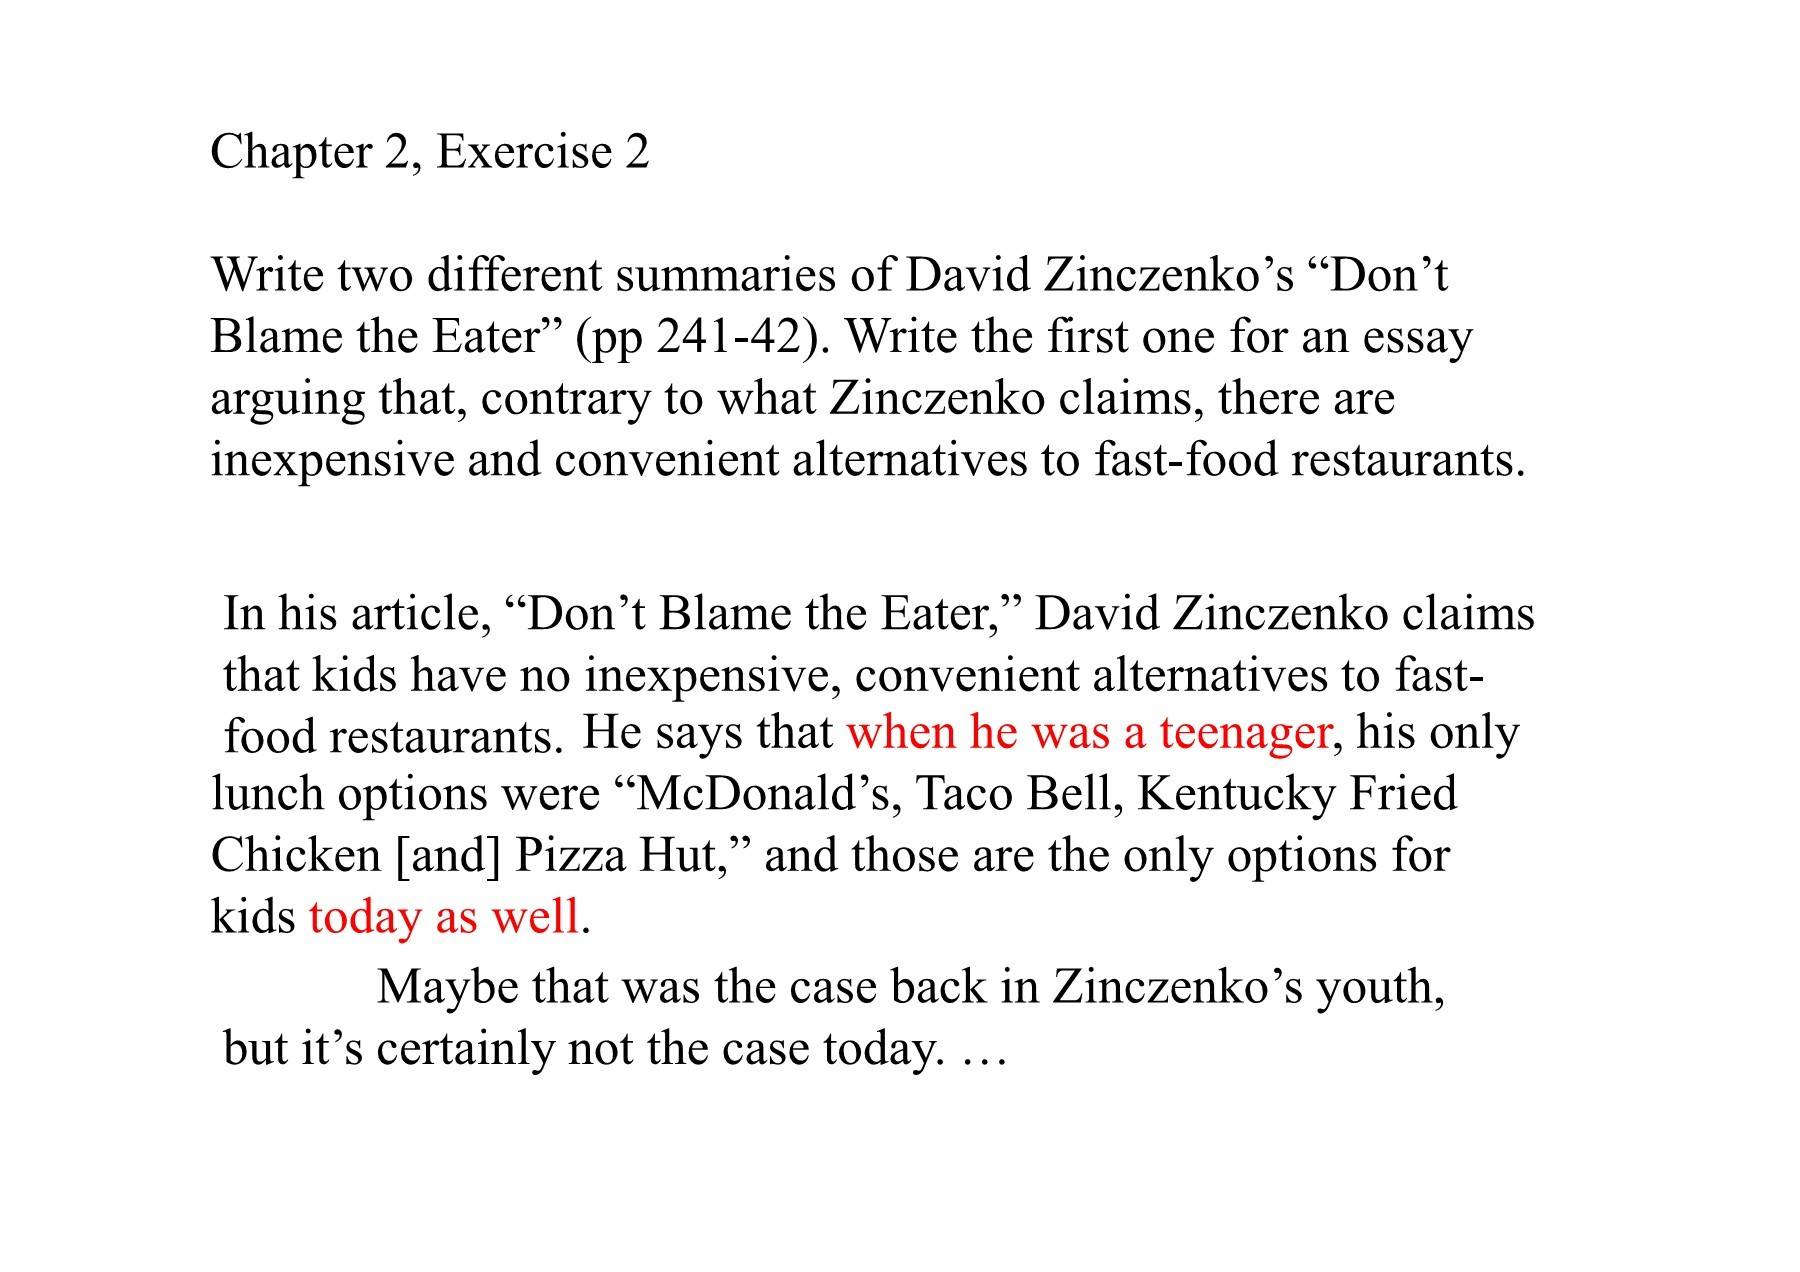 an analysis of the essay dont blame the eater by david zinczenko